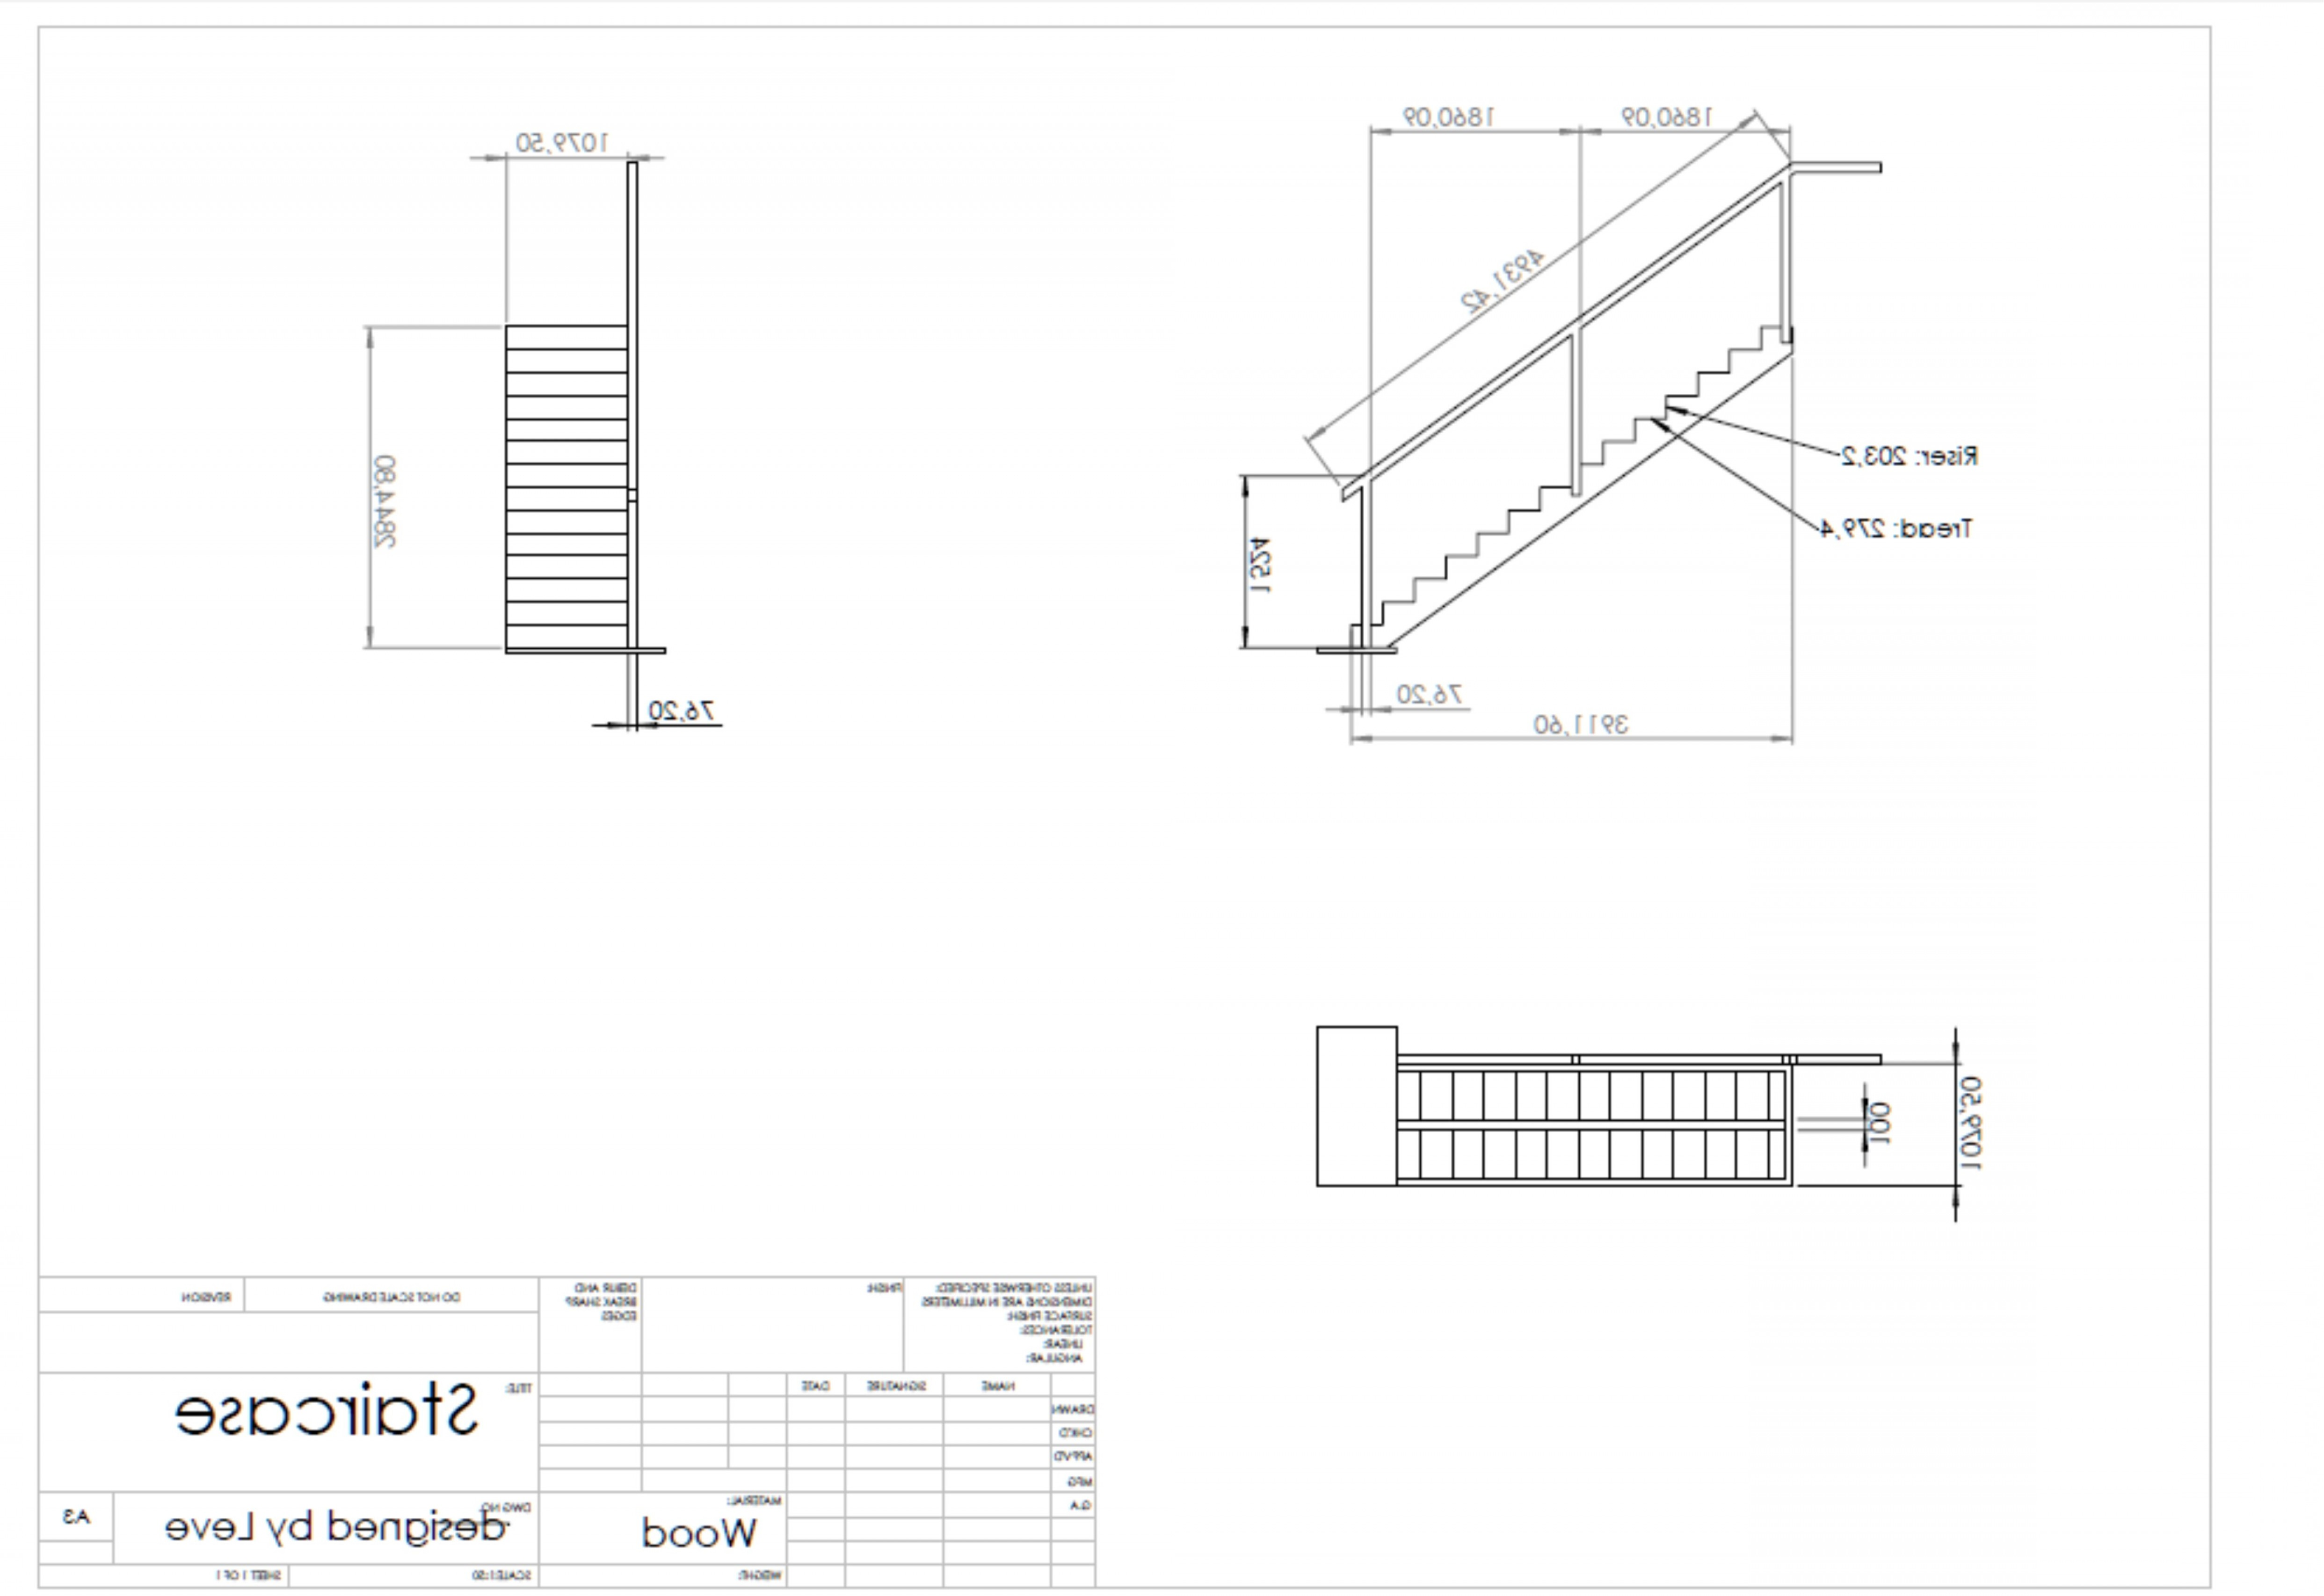 Falcon 50 Vector 2D CAD Drawings: A Simple Cad Drawing For A Staircase Frame For An